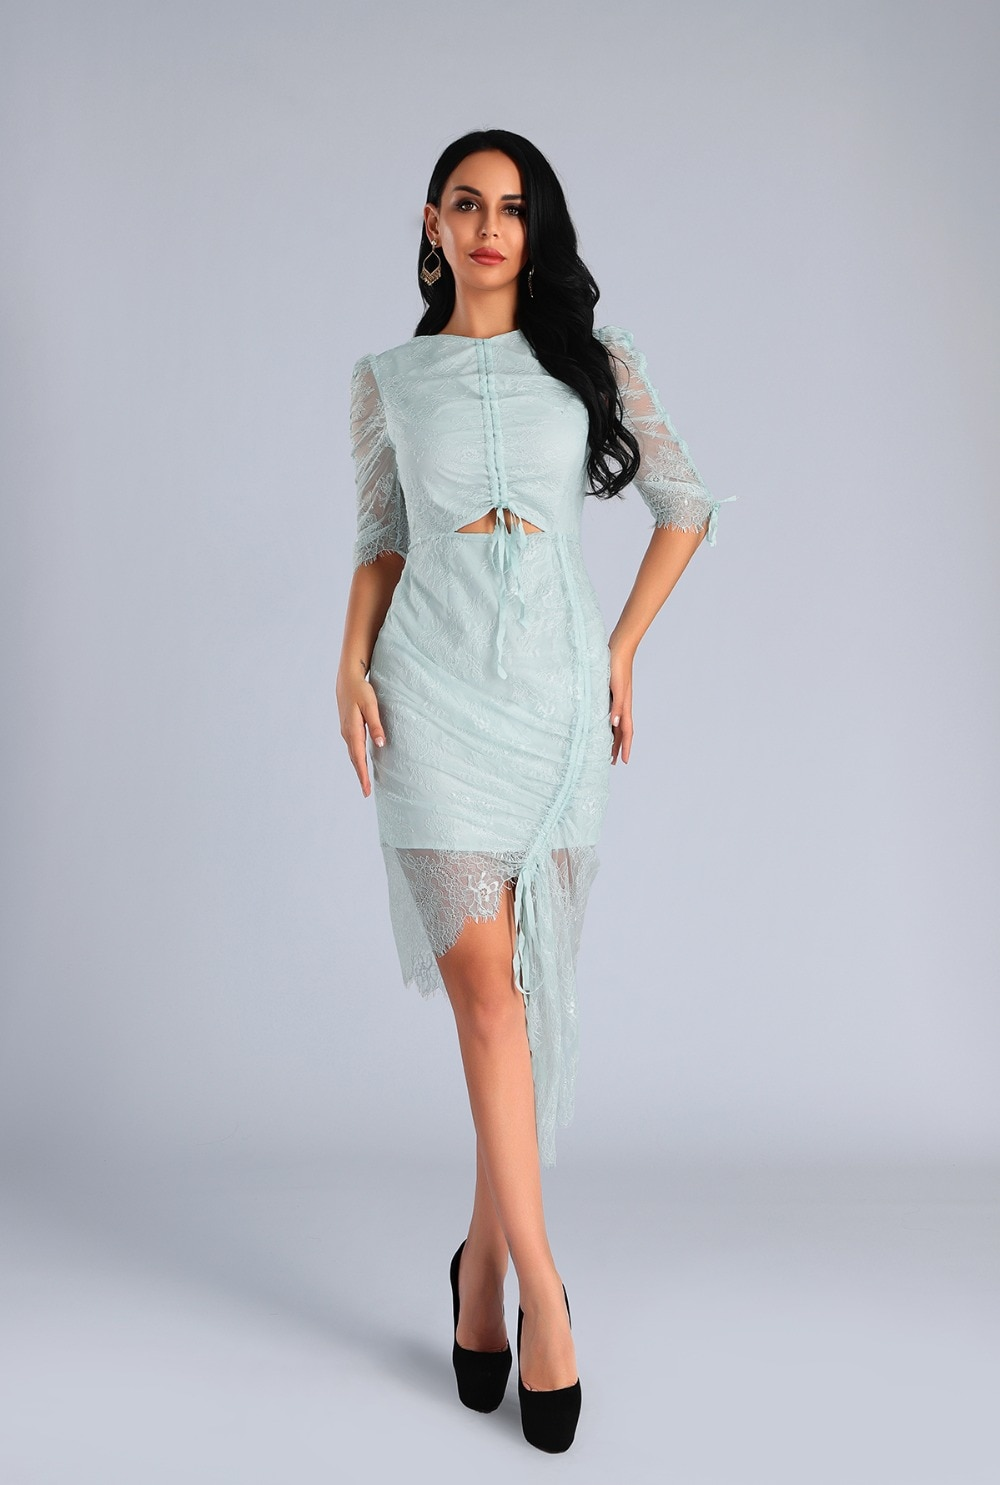 High Quality Light Blue O-Neck Half Lace Sleeve Bodycon Dress Fashion Party Elegant Dress 1